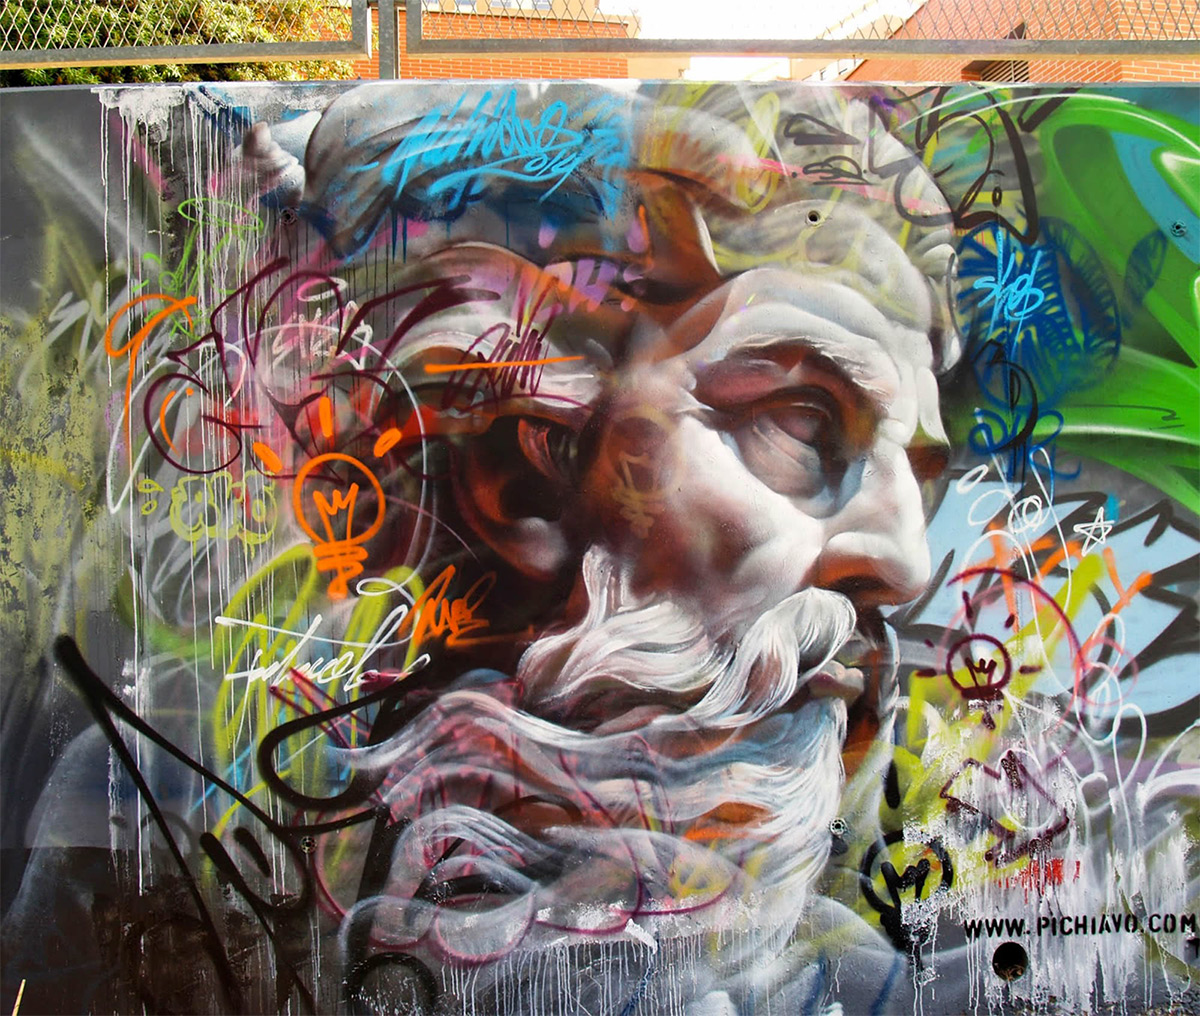 Pichi e Avo – Greek Gods Graffiti